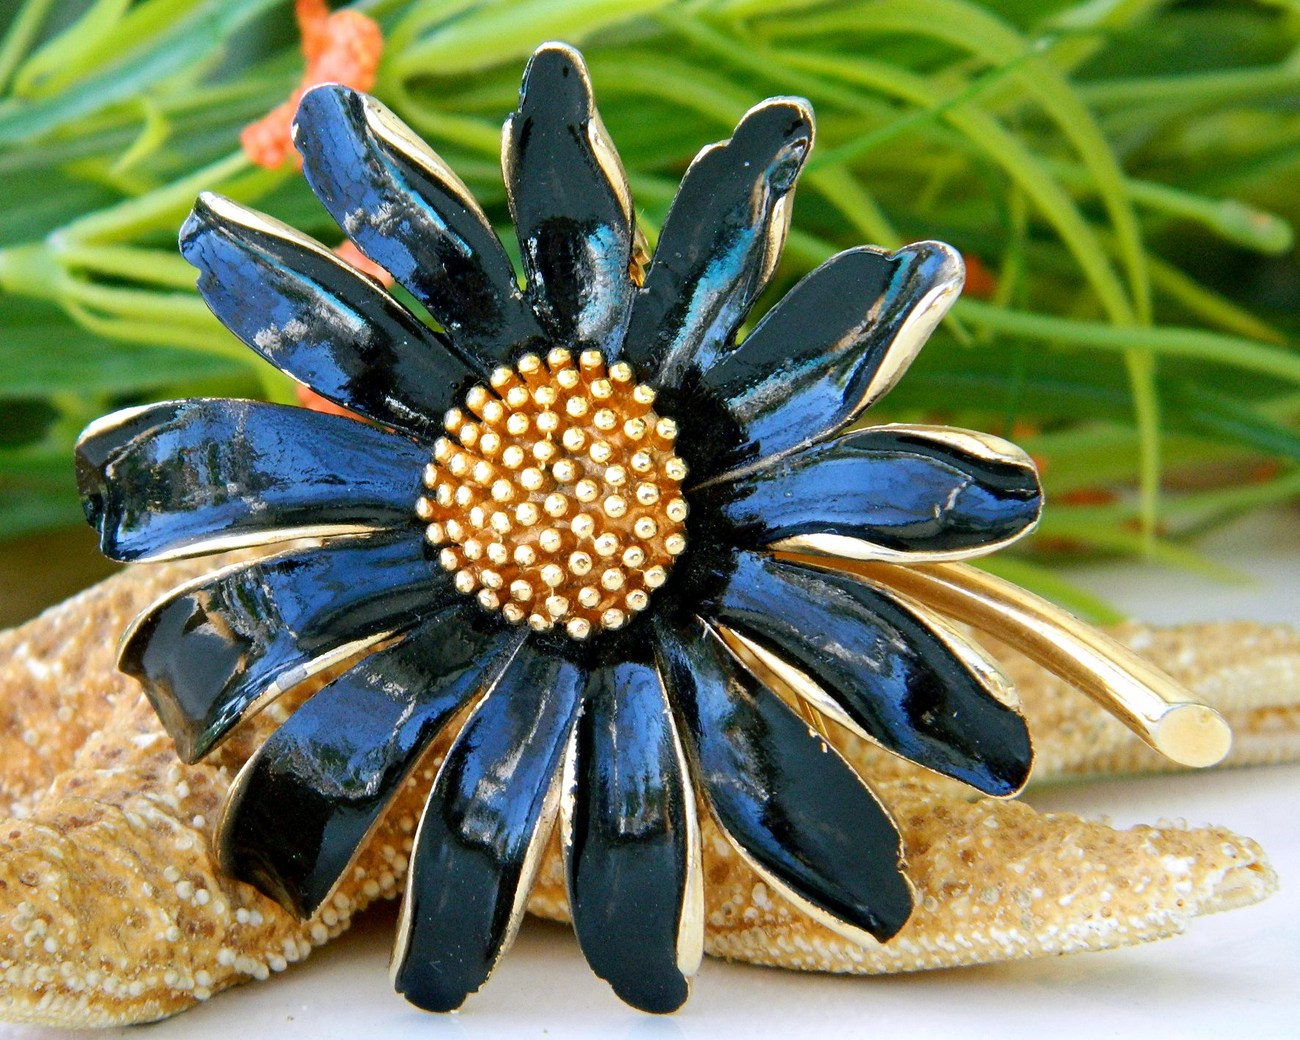 Vintage_marvella_pin_brooch_flower_daisy_figural_black_enamel